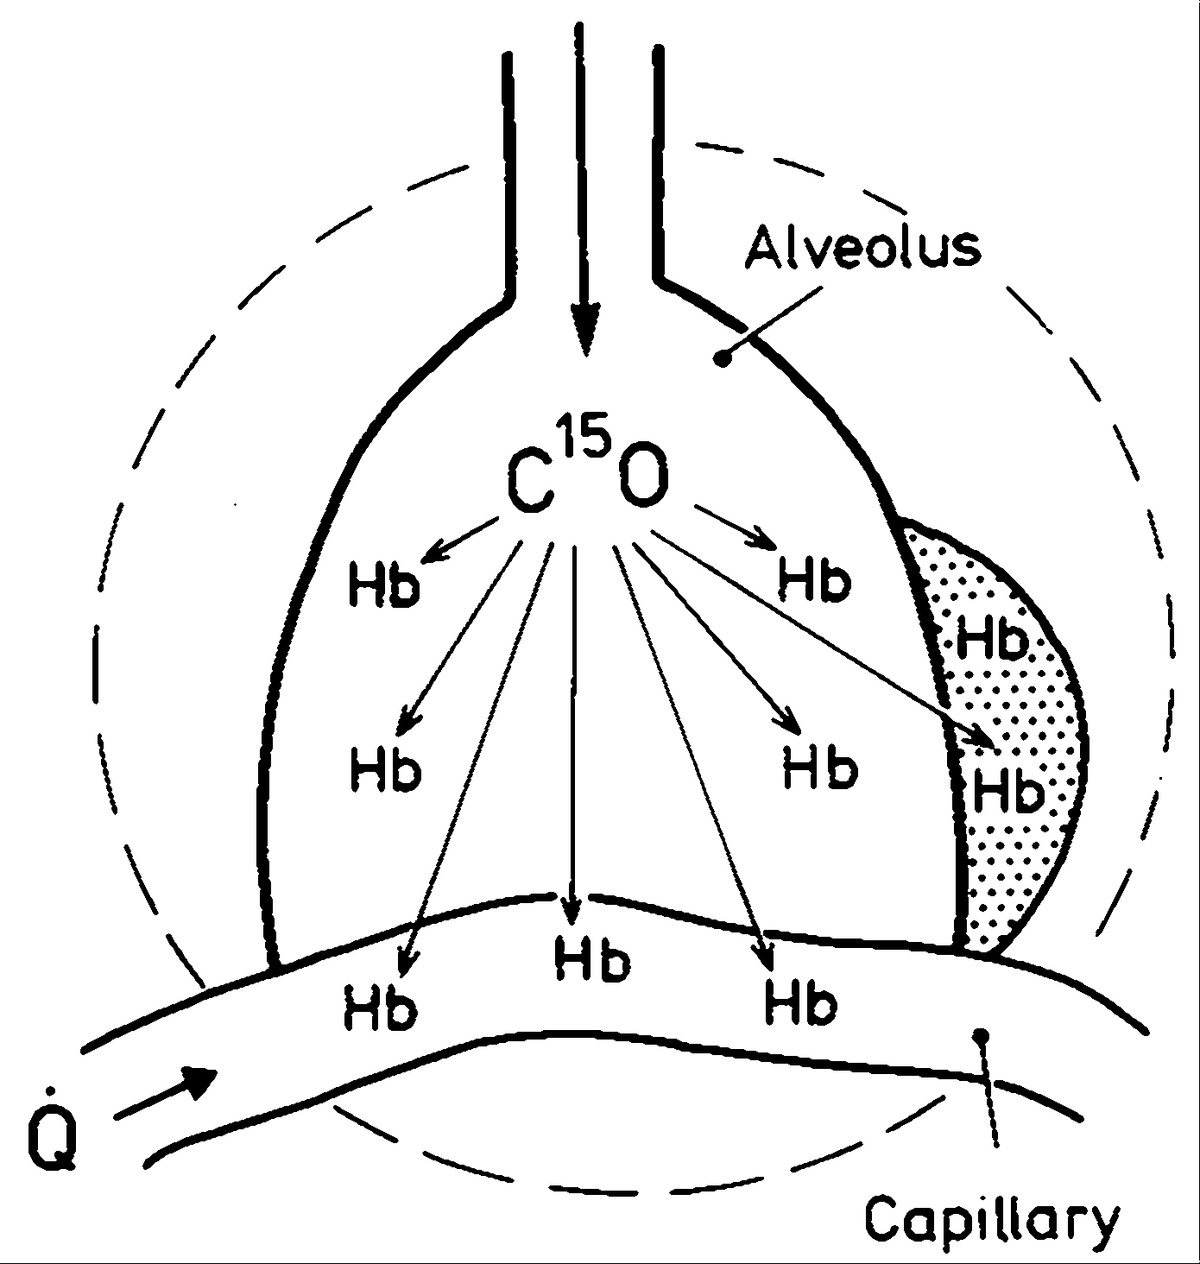 Detection Of Intrapulmonary Hemorrhage With Carbon